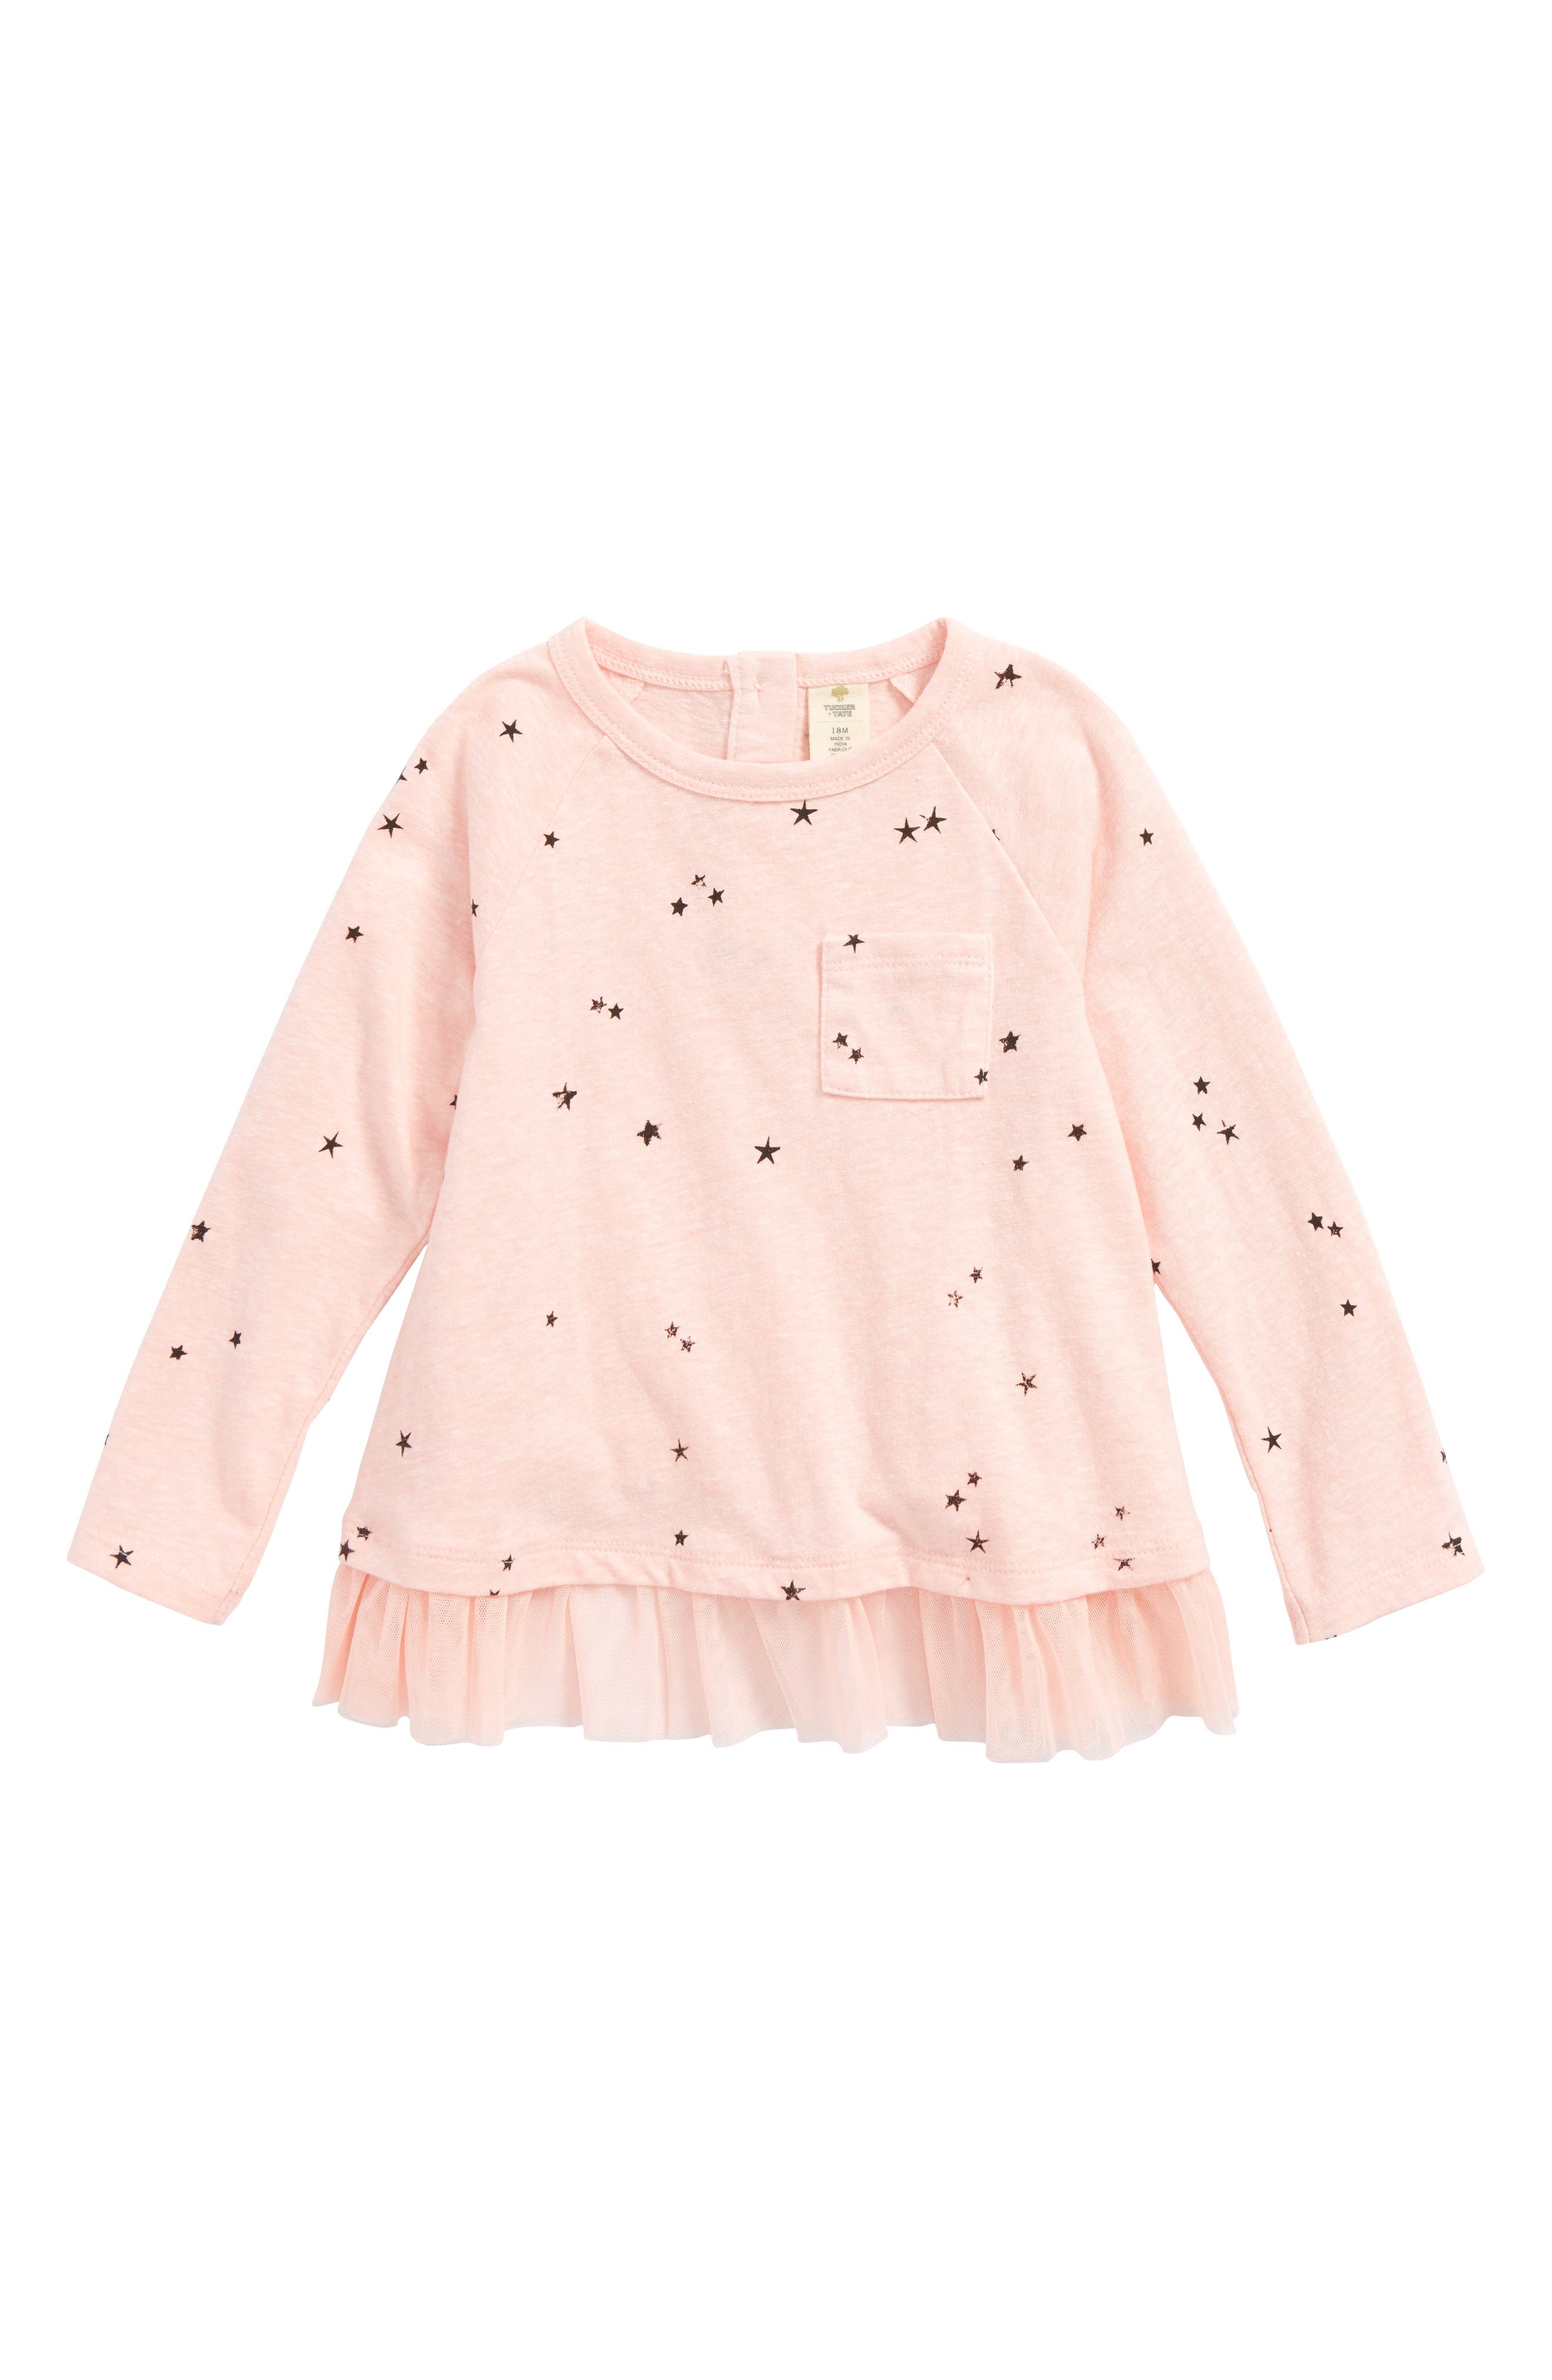 Mesh Hem Tee,                         Main,                         color, Pink Cloud Scattered Stars